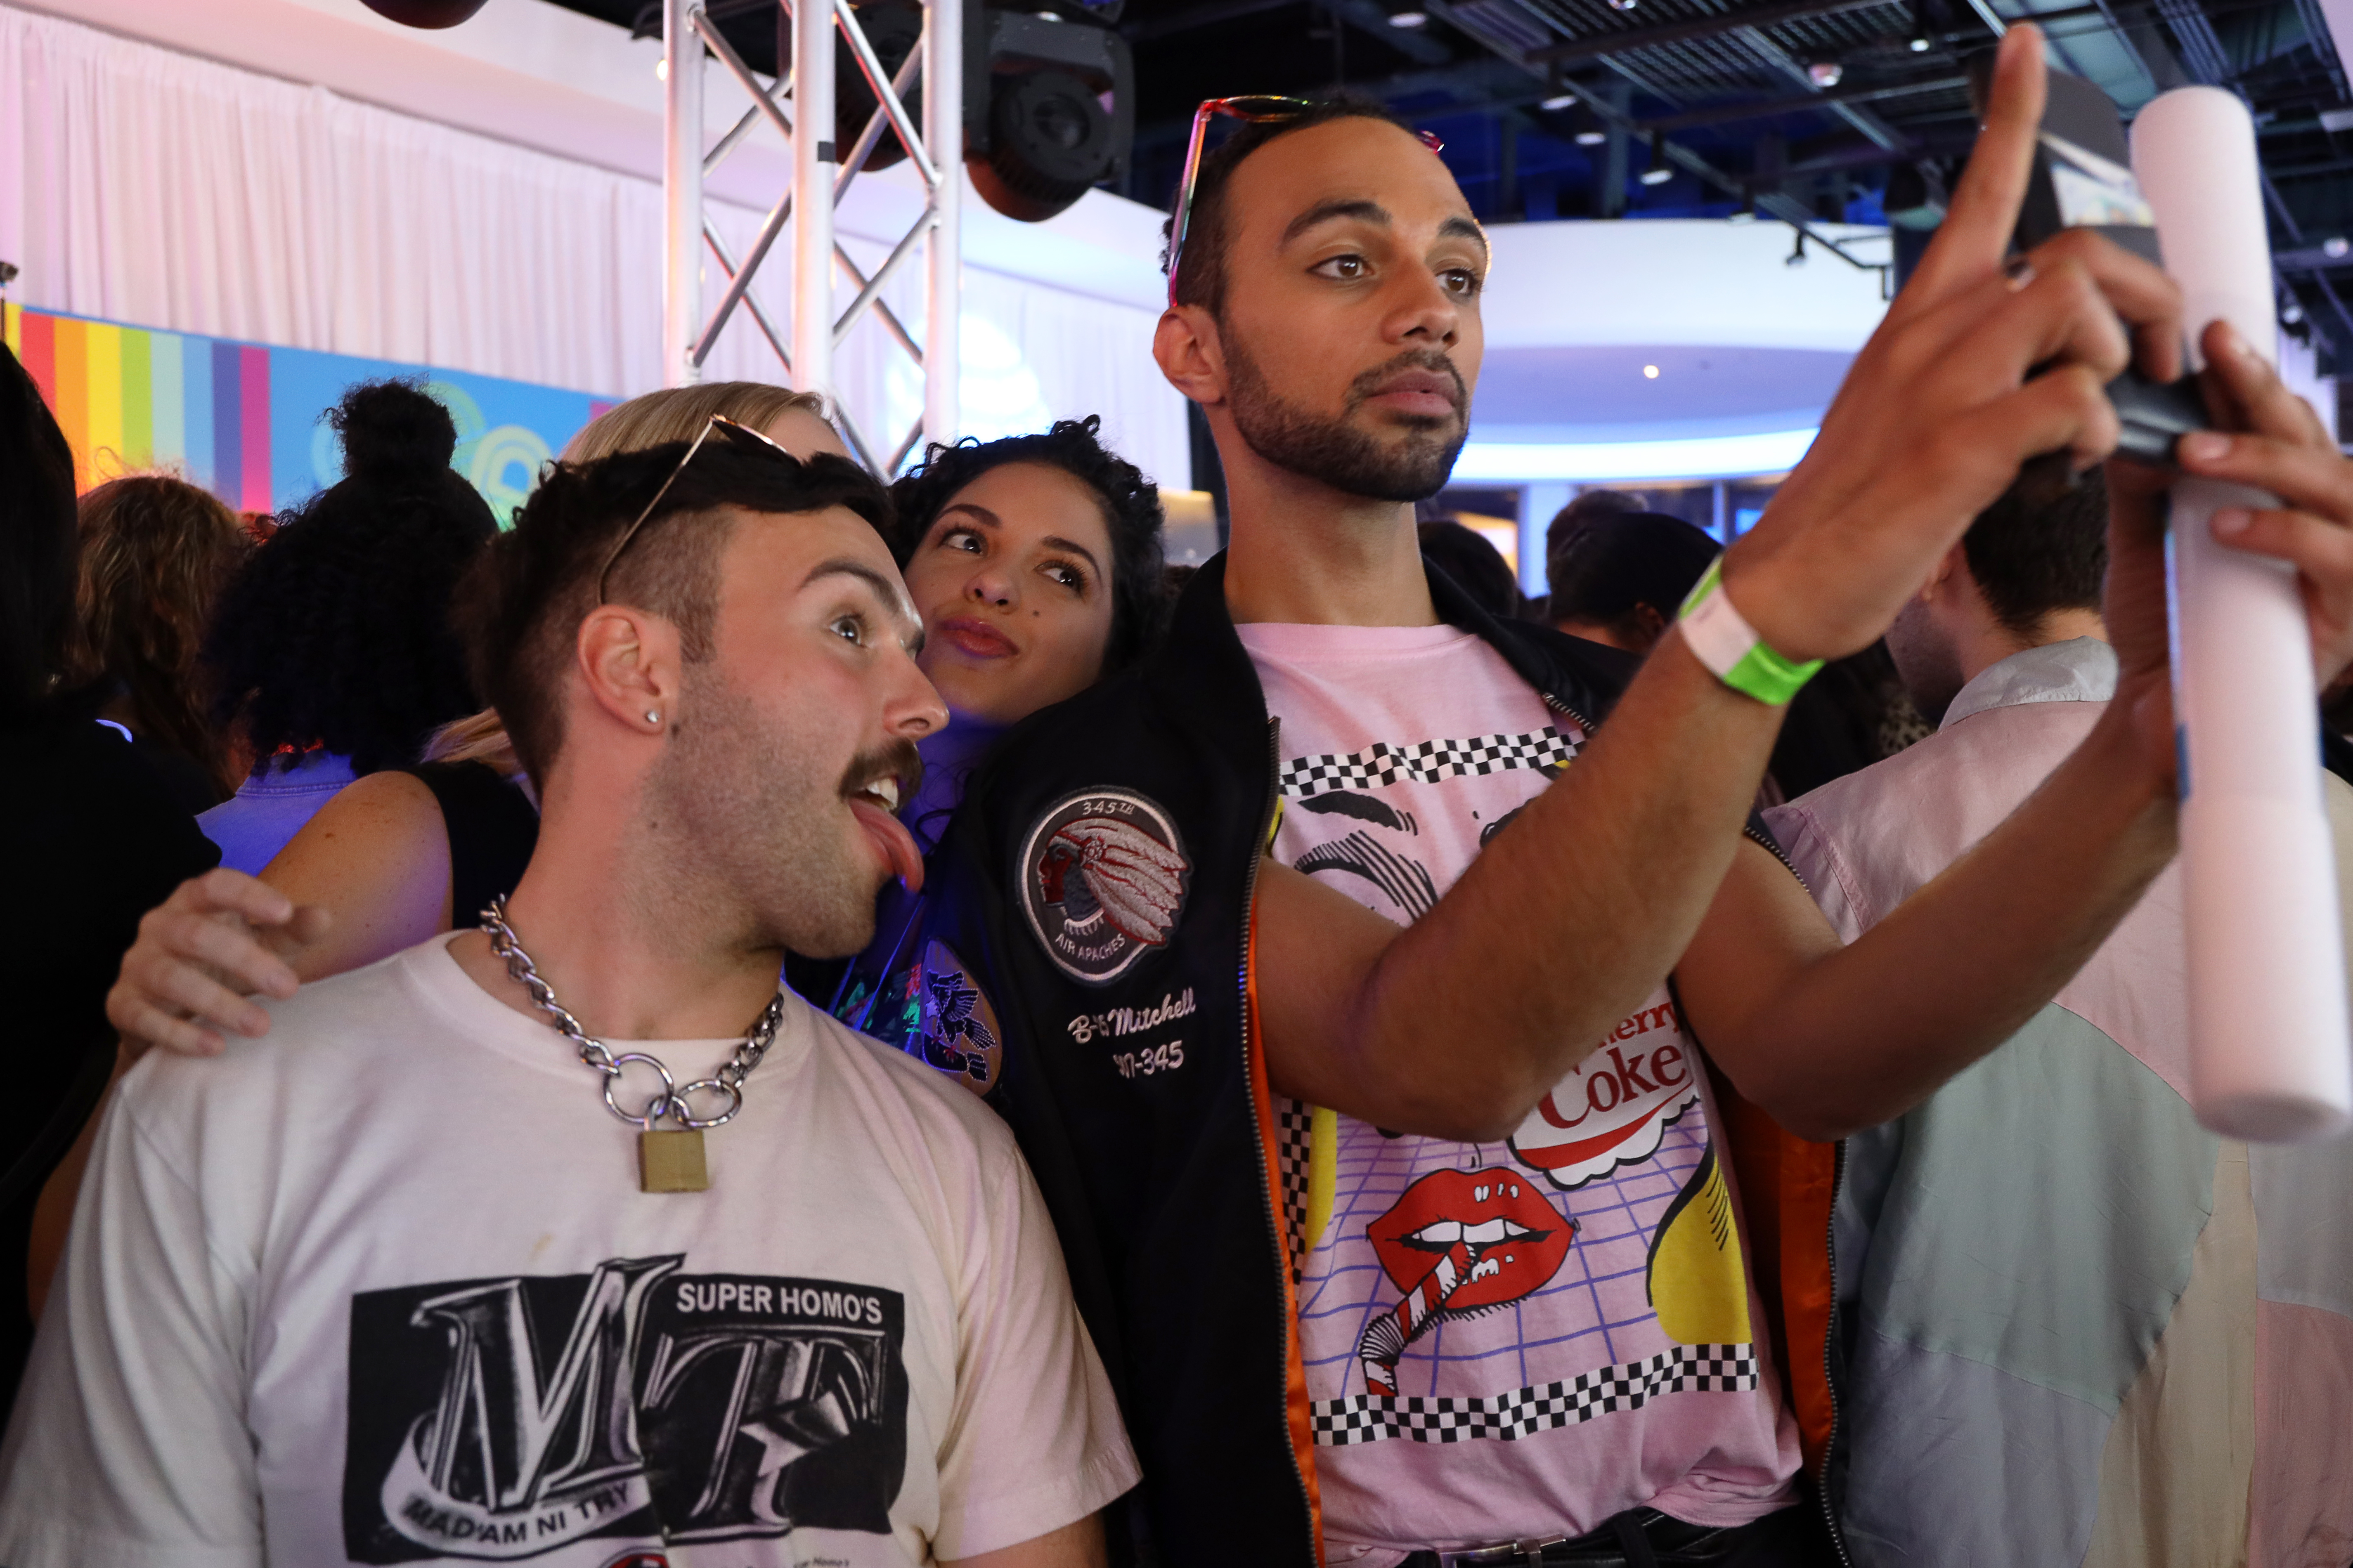 Fans Taking Selfie at Lizzo Event